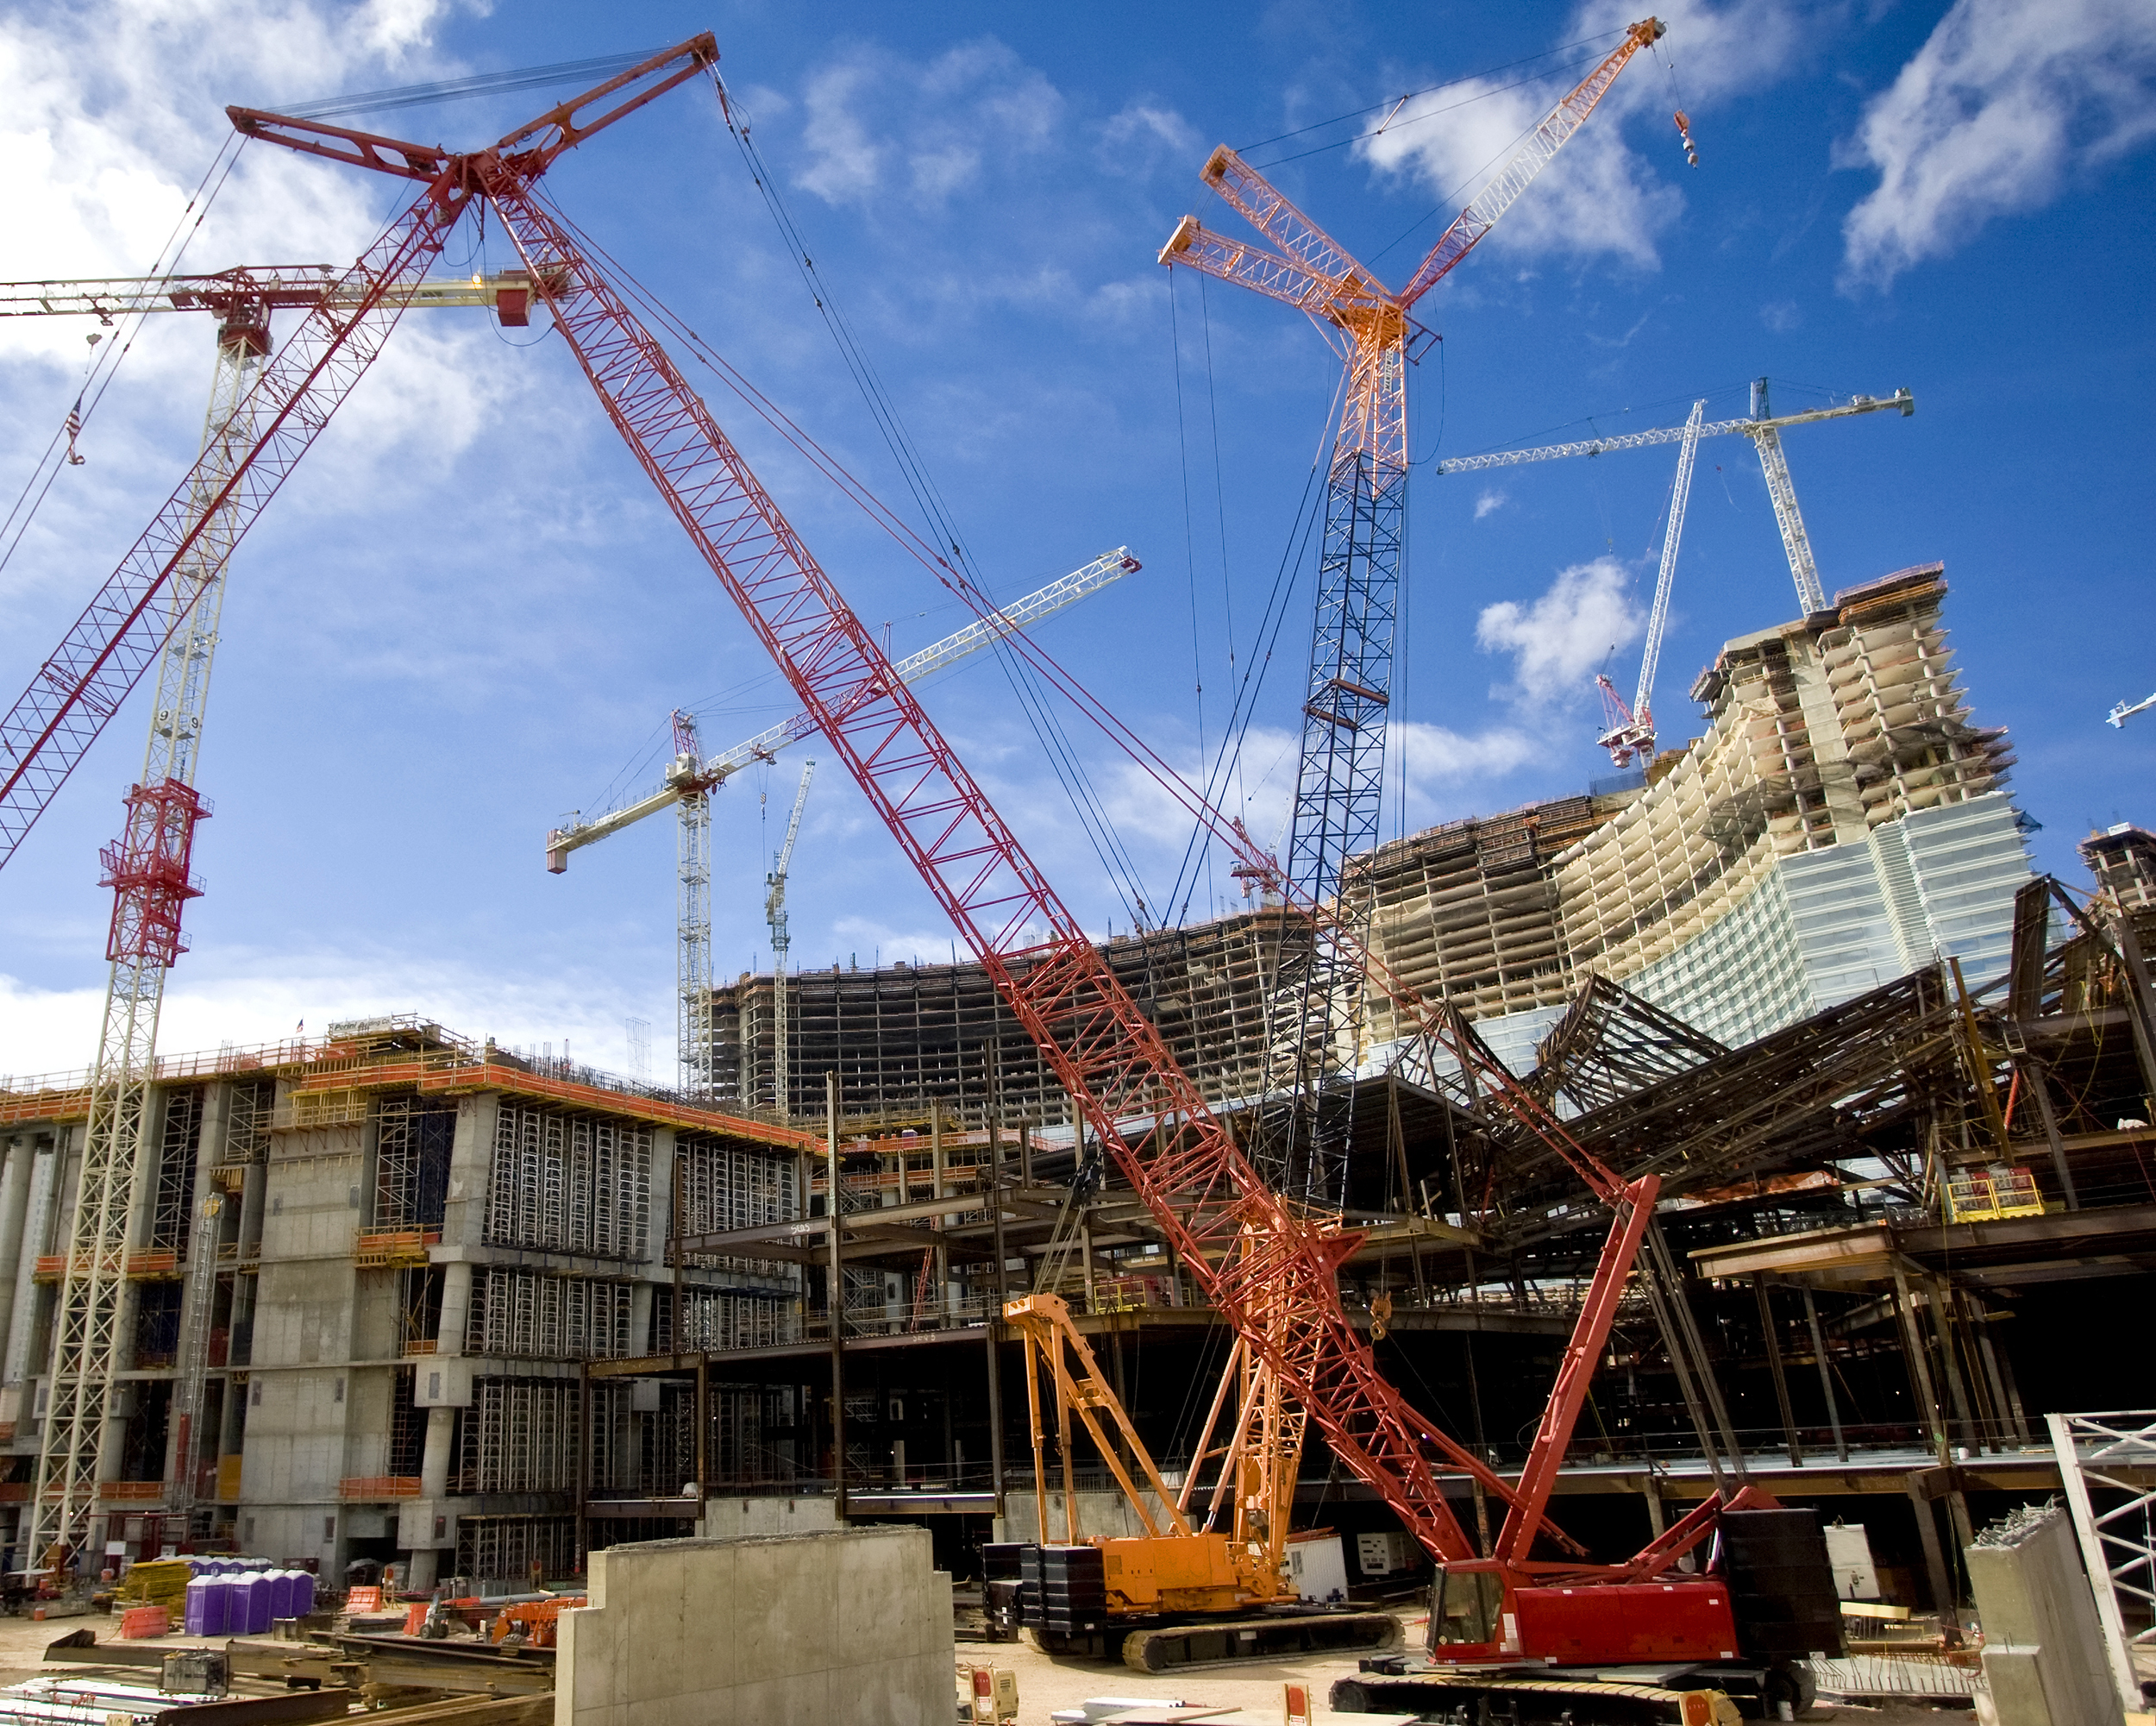 iStock Image for Construction